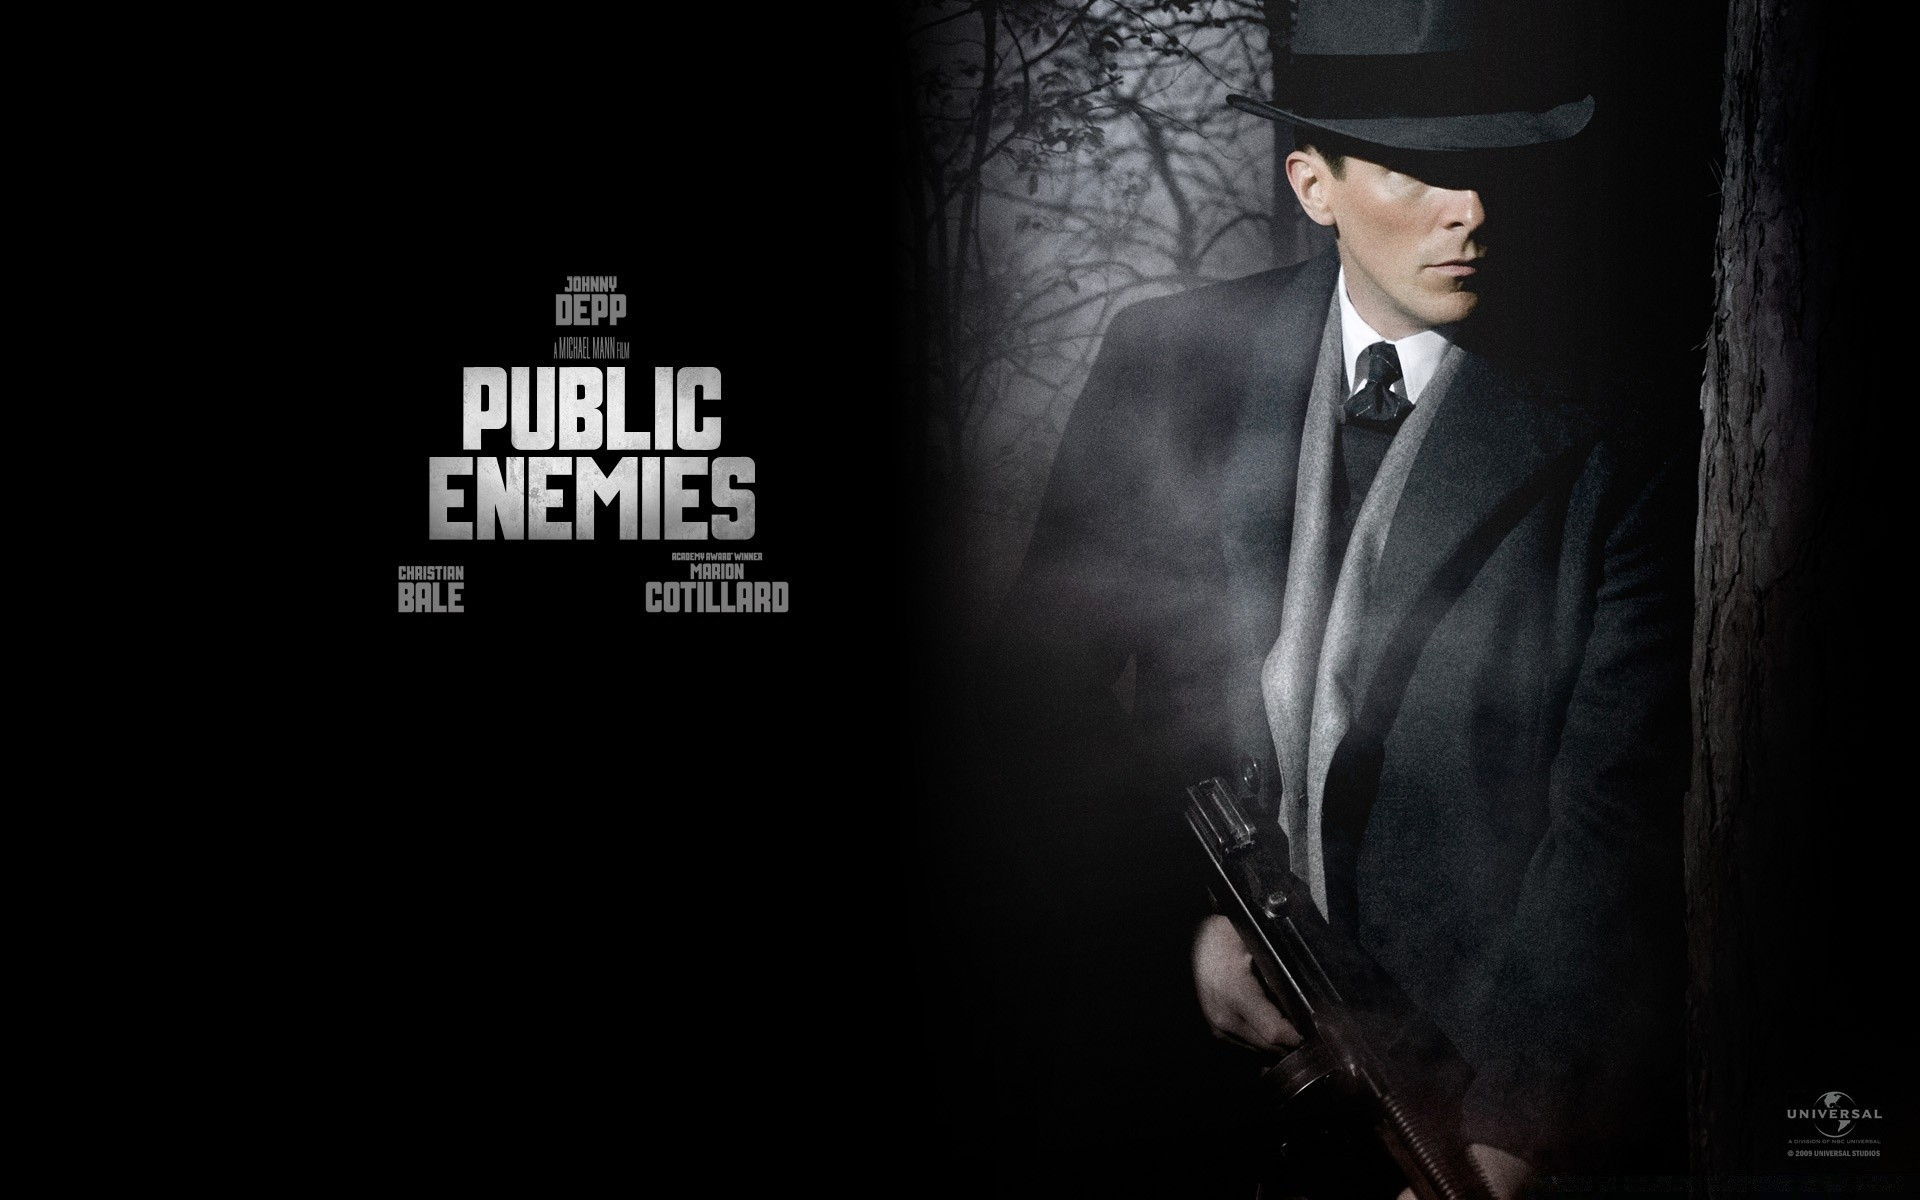 Christian Bale Public Enemies Iphone Wallpapers For Free